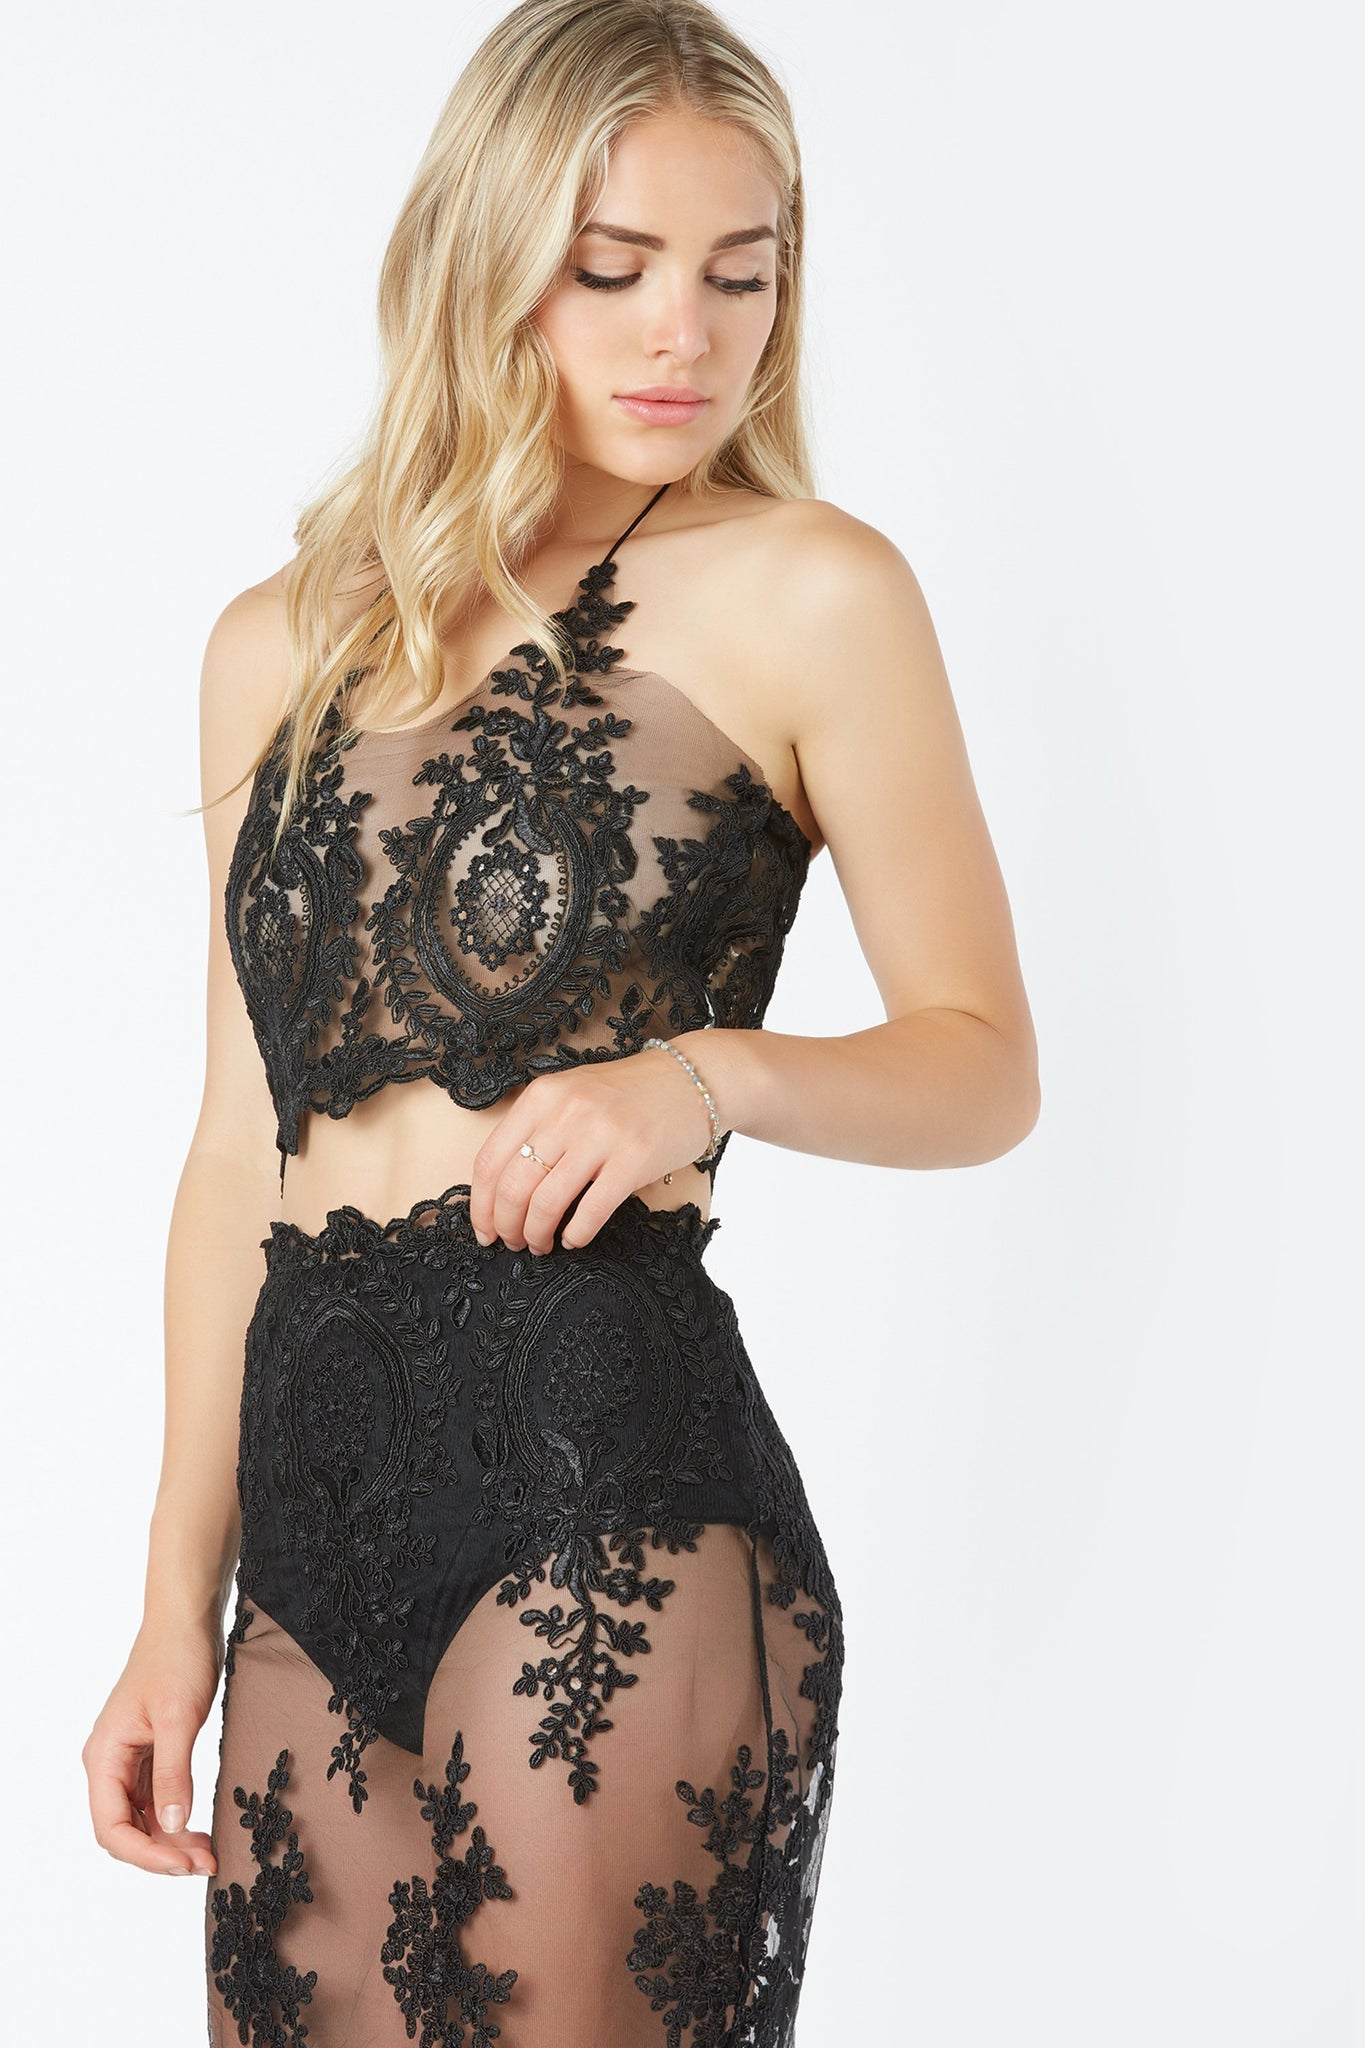 Delicate mesh crop top with corded embroidery throughout. Dainty halter tie detailing and back zip closure.